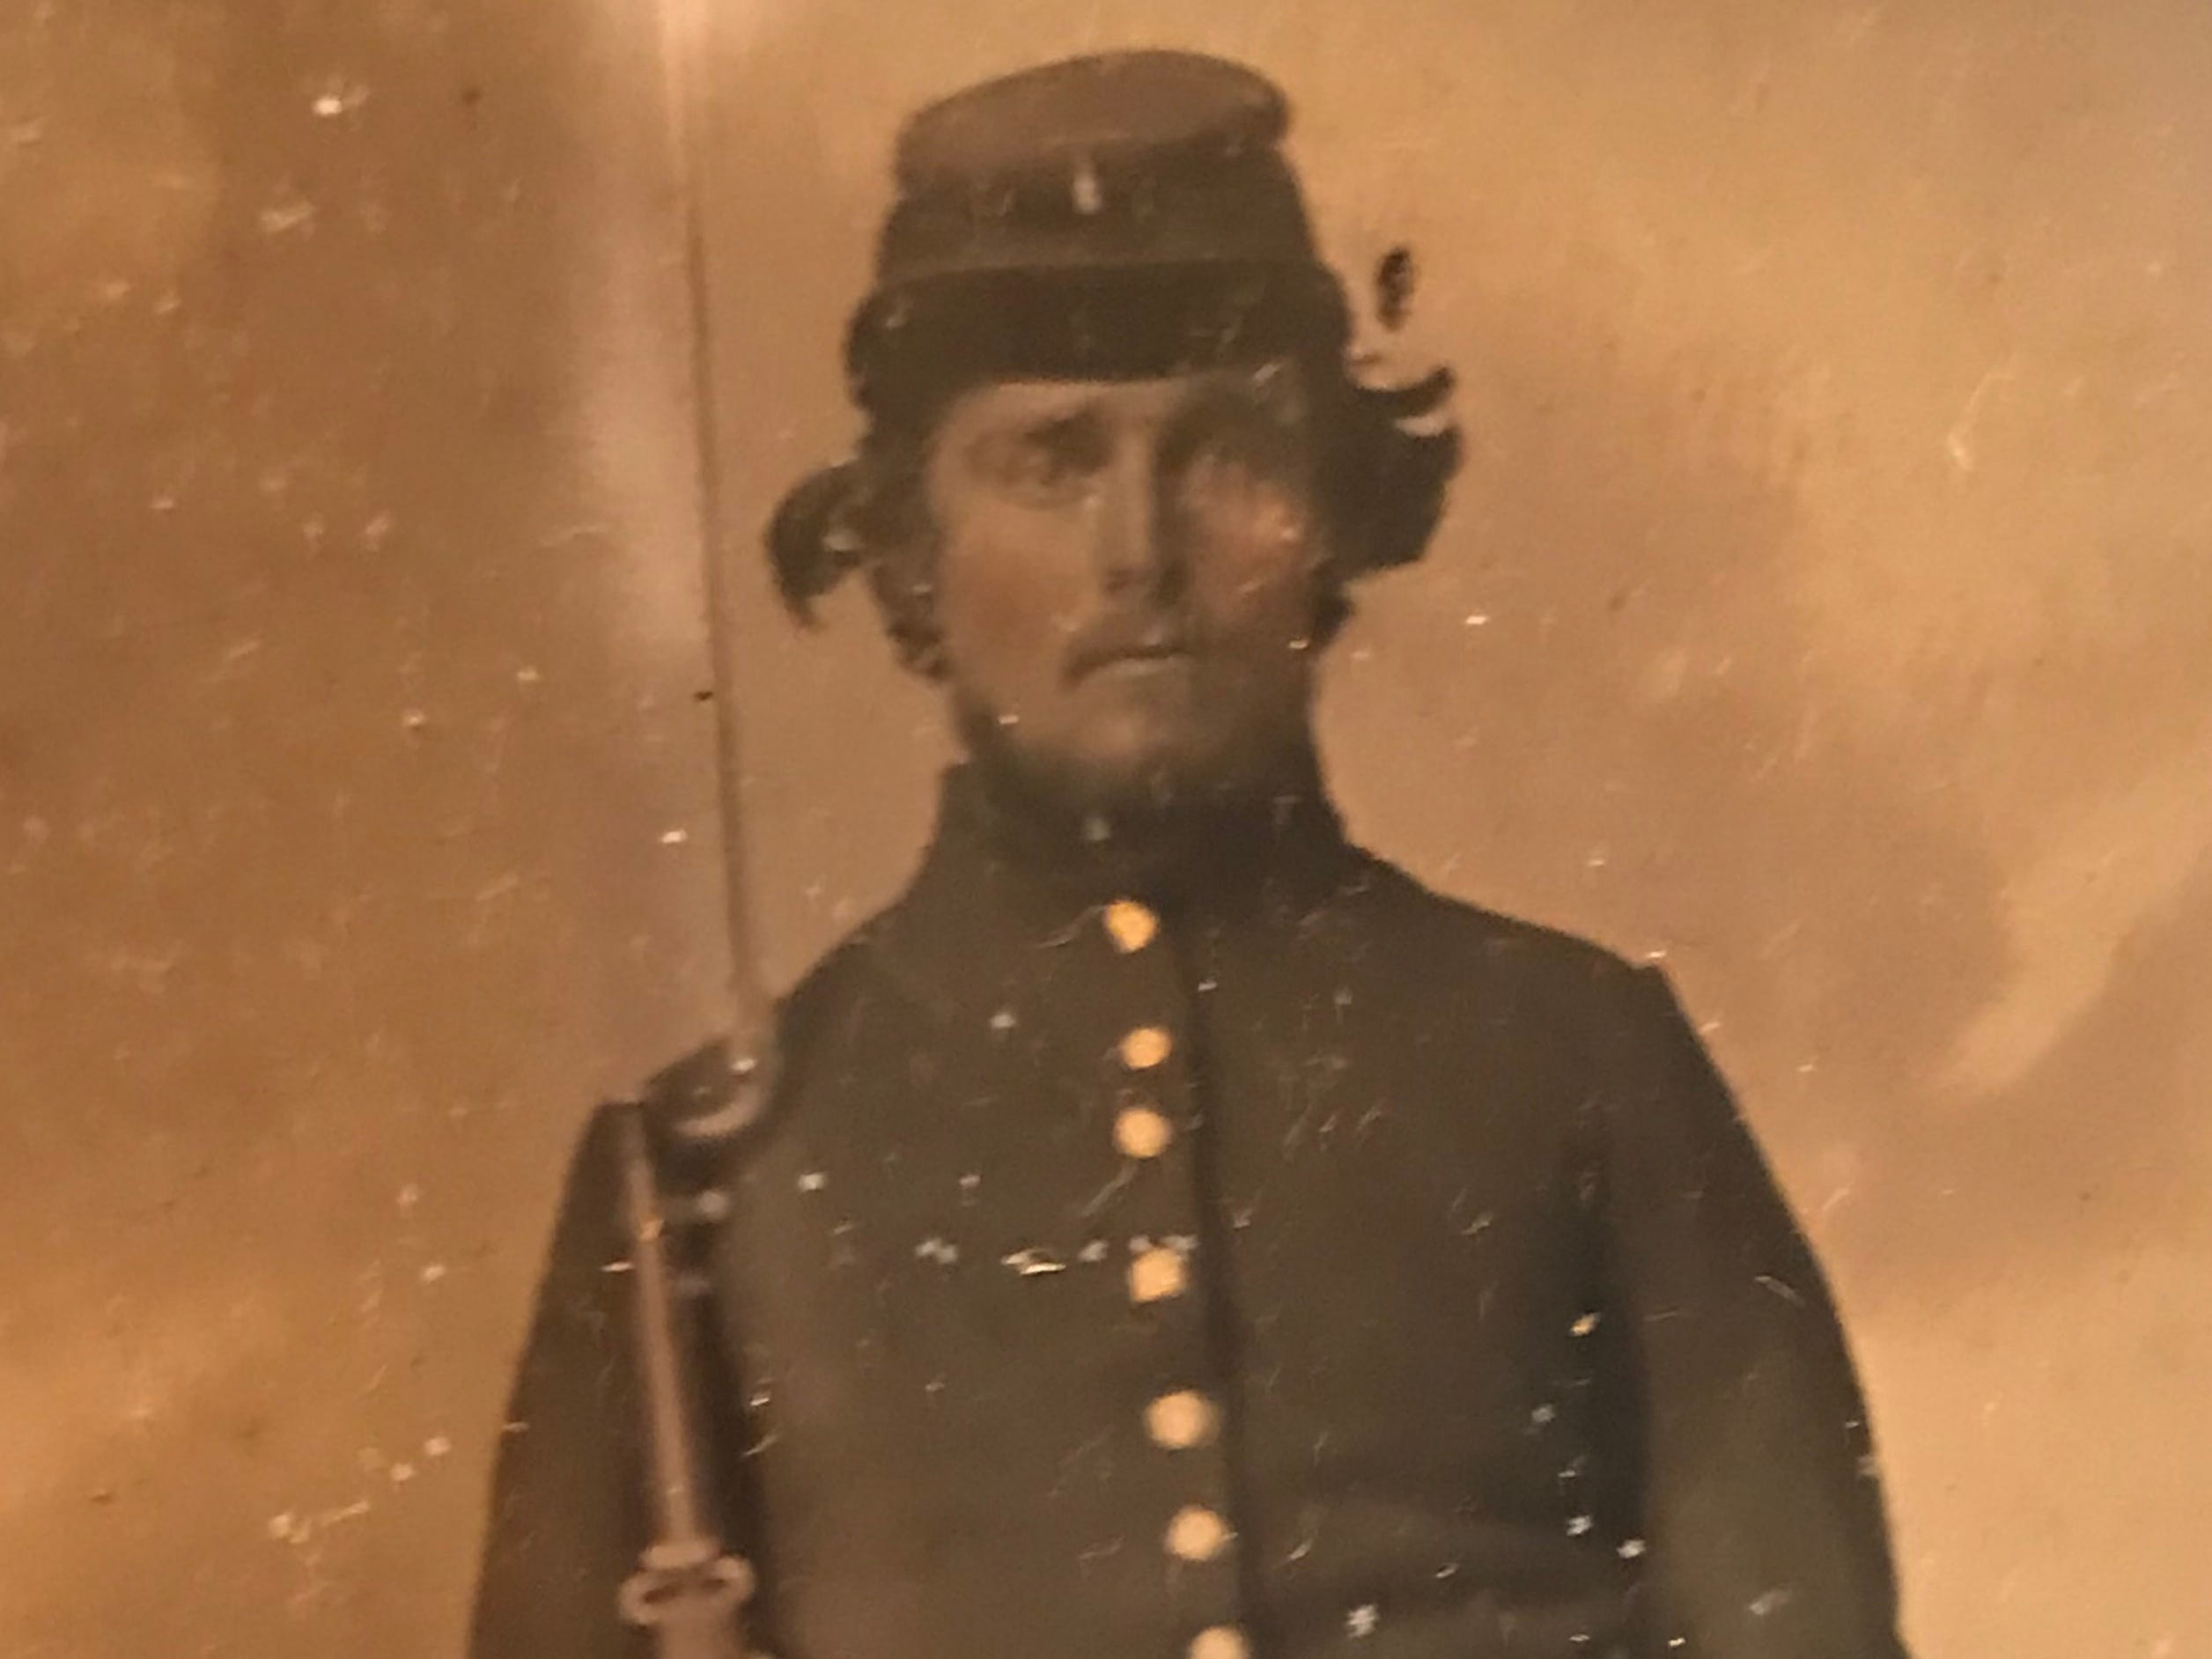 Photograph of an unknown Civil War soldier.